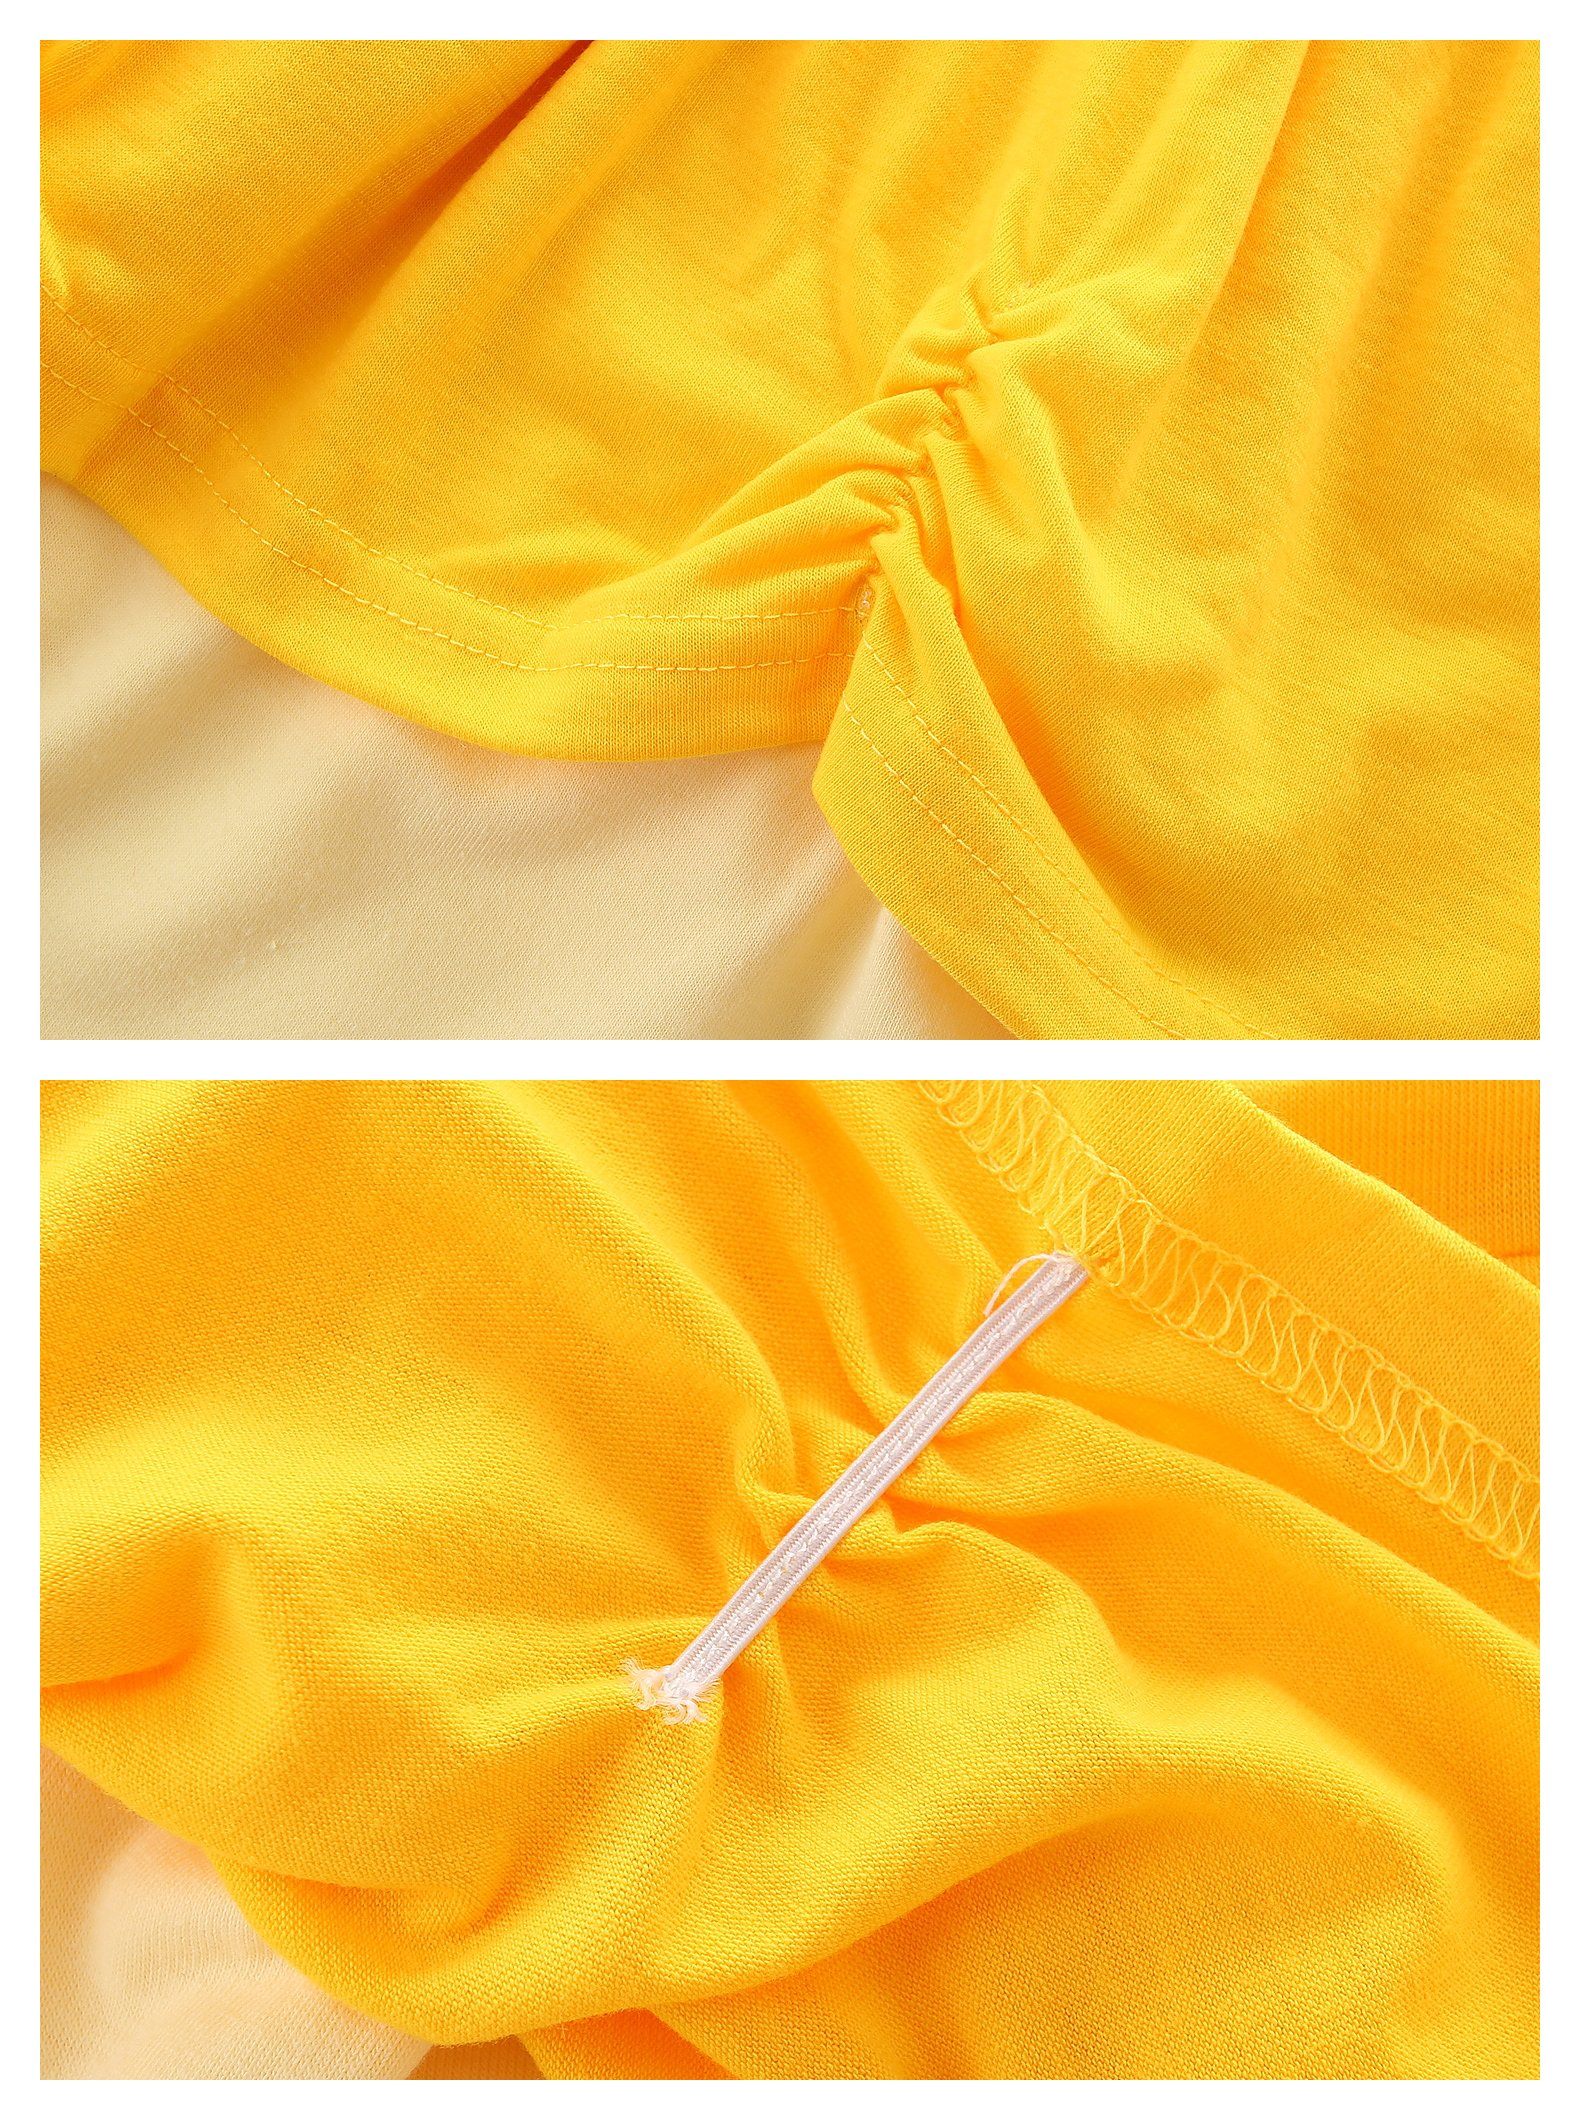 AmzBarley Girls' Belle Costume Party Dress up Clothes Flower Princess Dresses Yellow Size 6 by AmzBarley (Image #5)